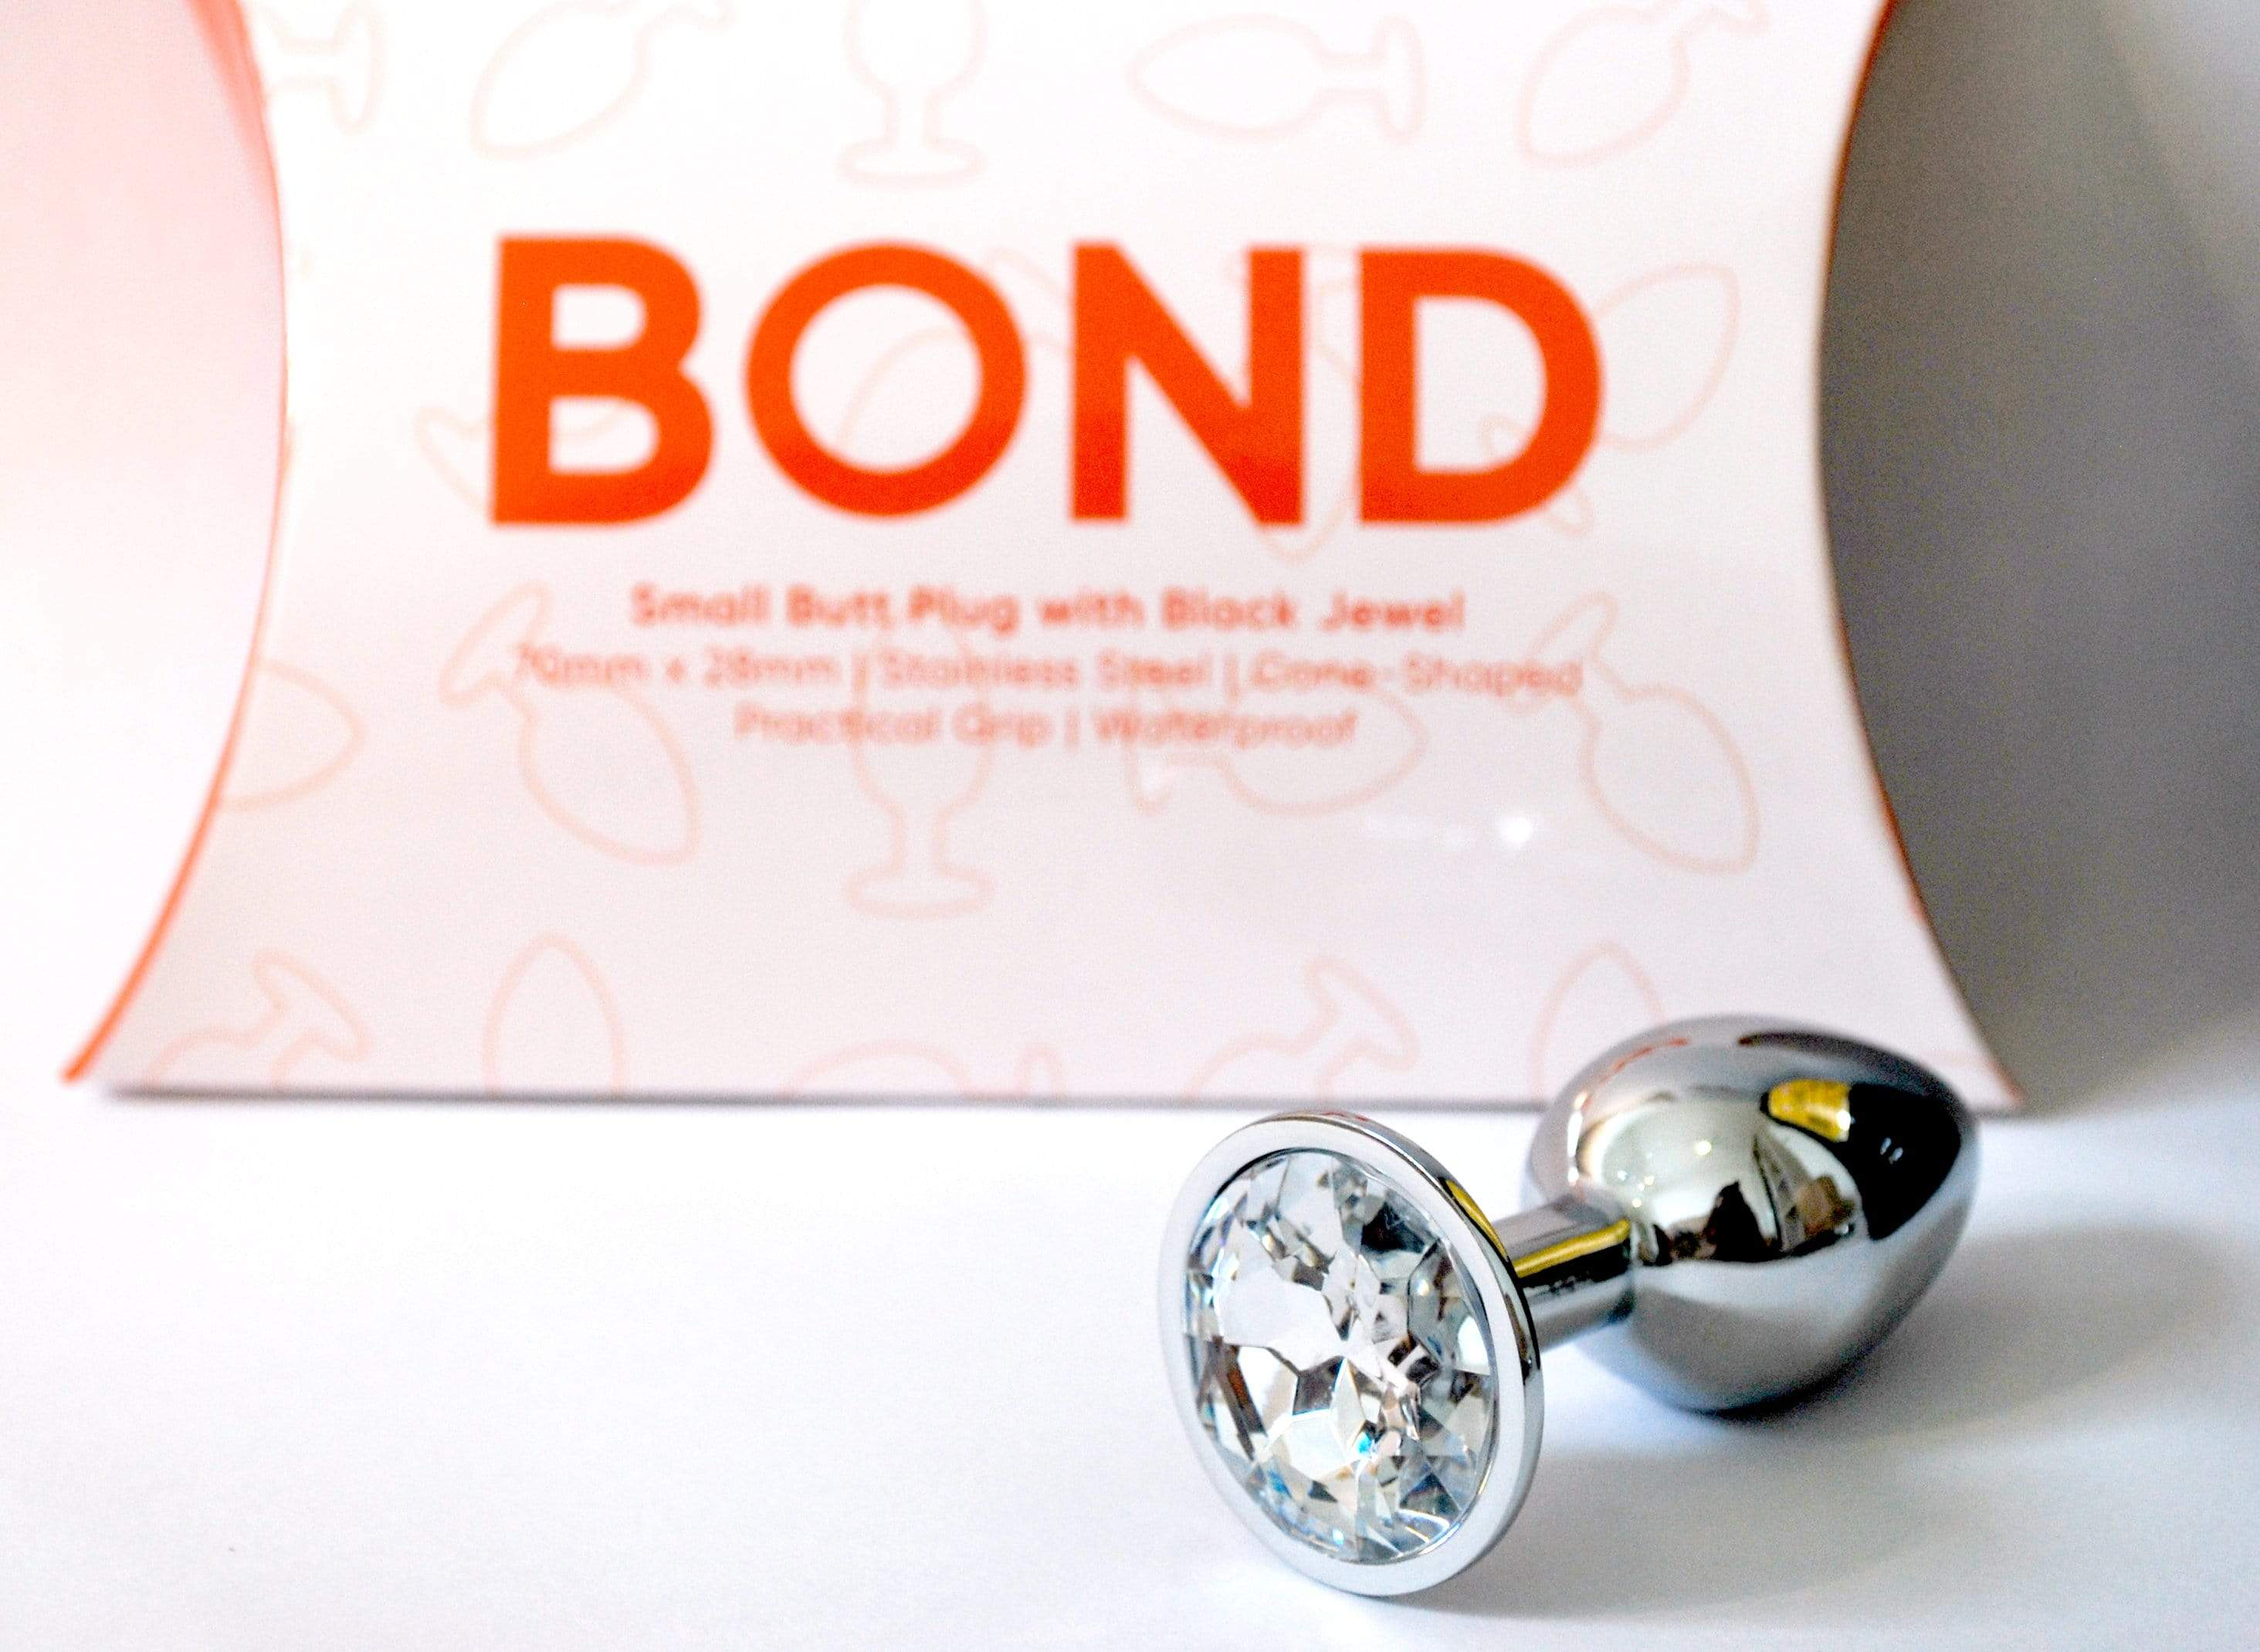 MY AMORA Anal Toy Bond - Small Butt Plug w. Jewel Clear